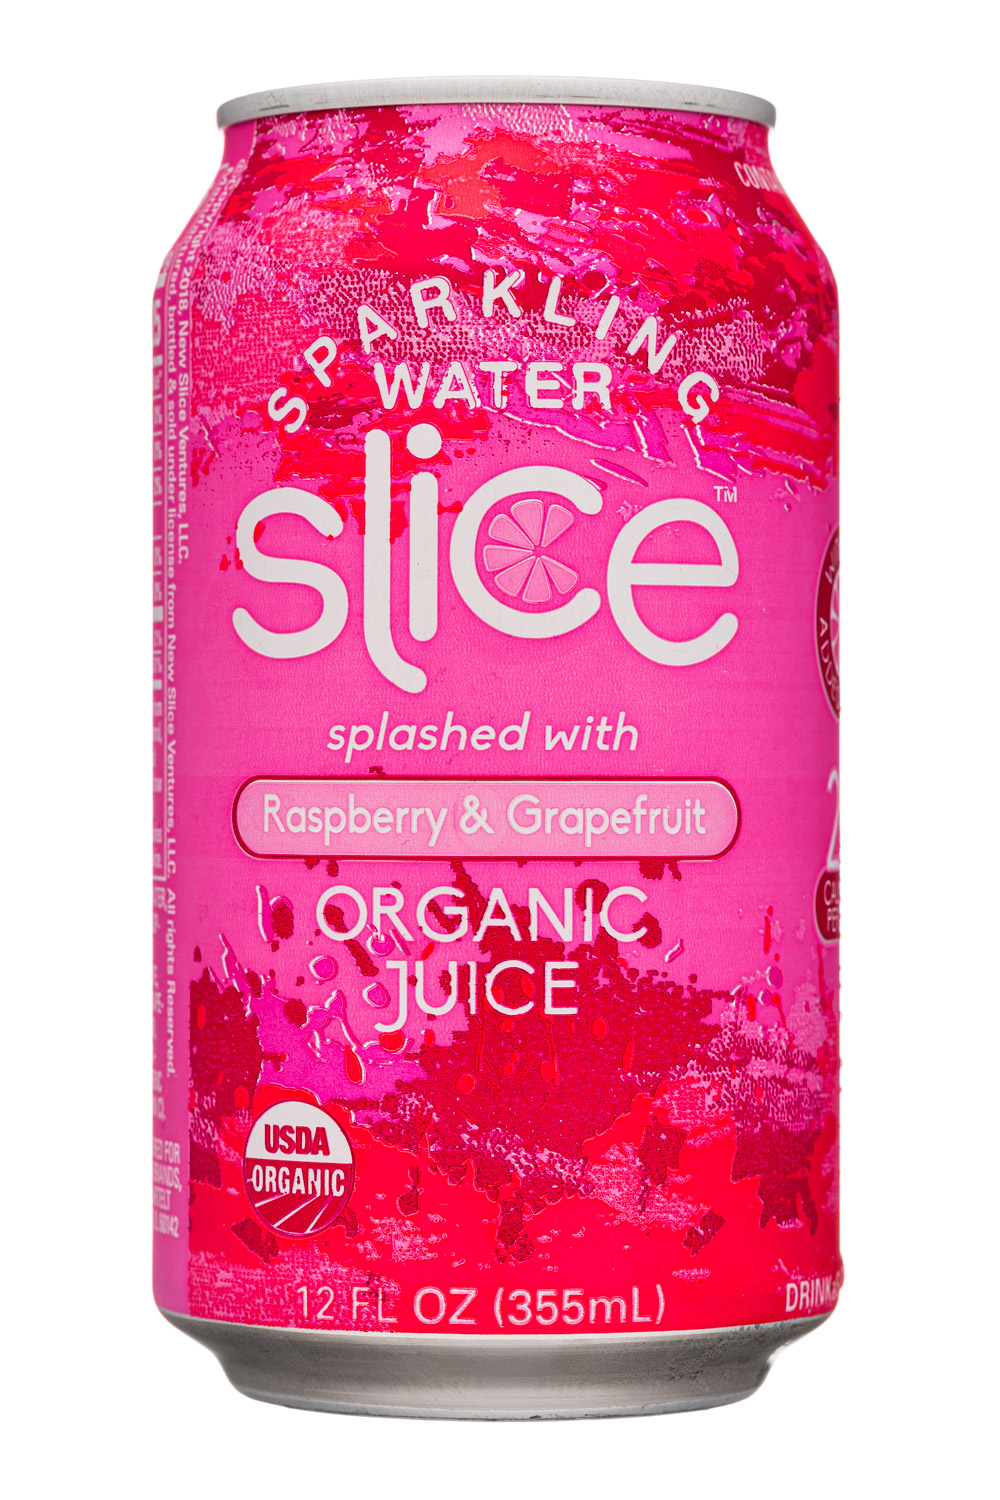 Raspberry & Grapefruit Sparkling Water (can)